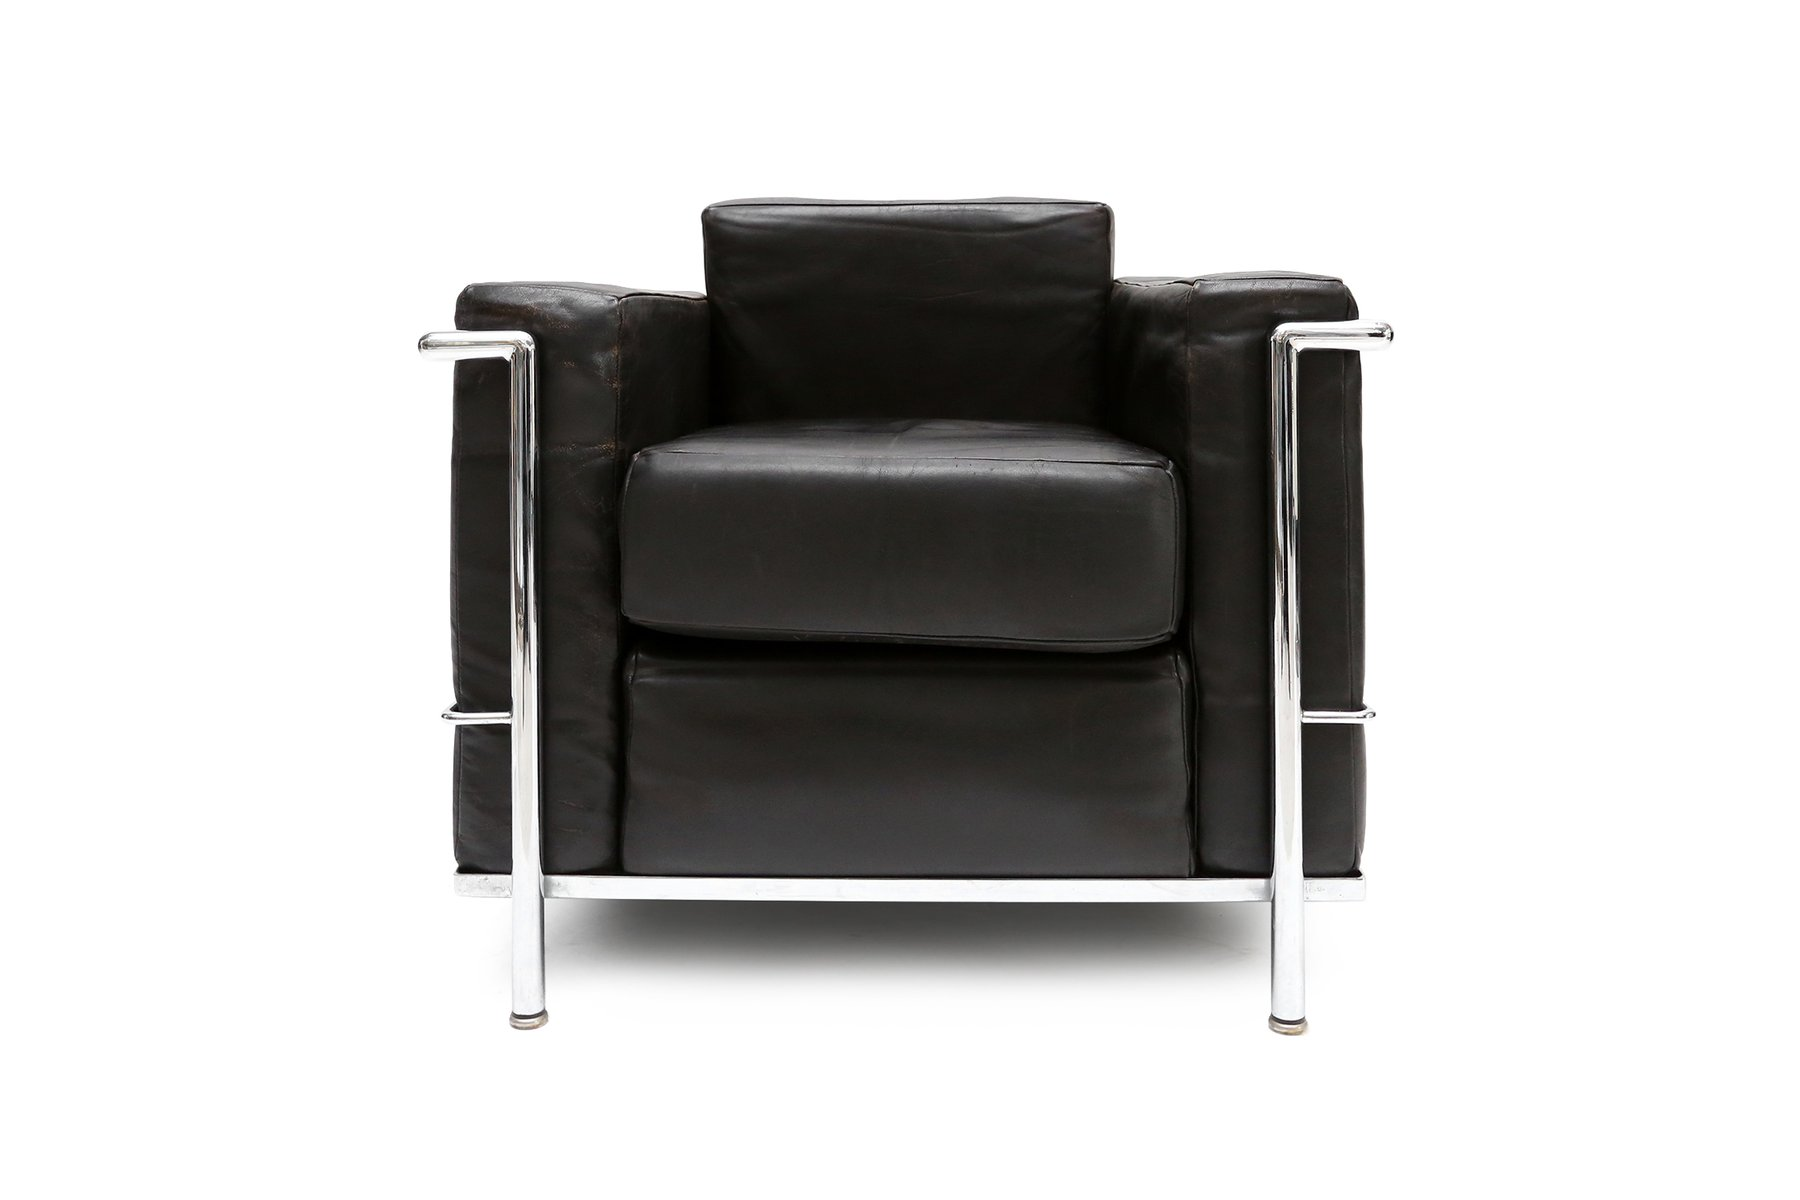 Lc2 Cassina Prezzo | Emejing Le Corbusier Lc2 Contemporary Home Design